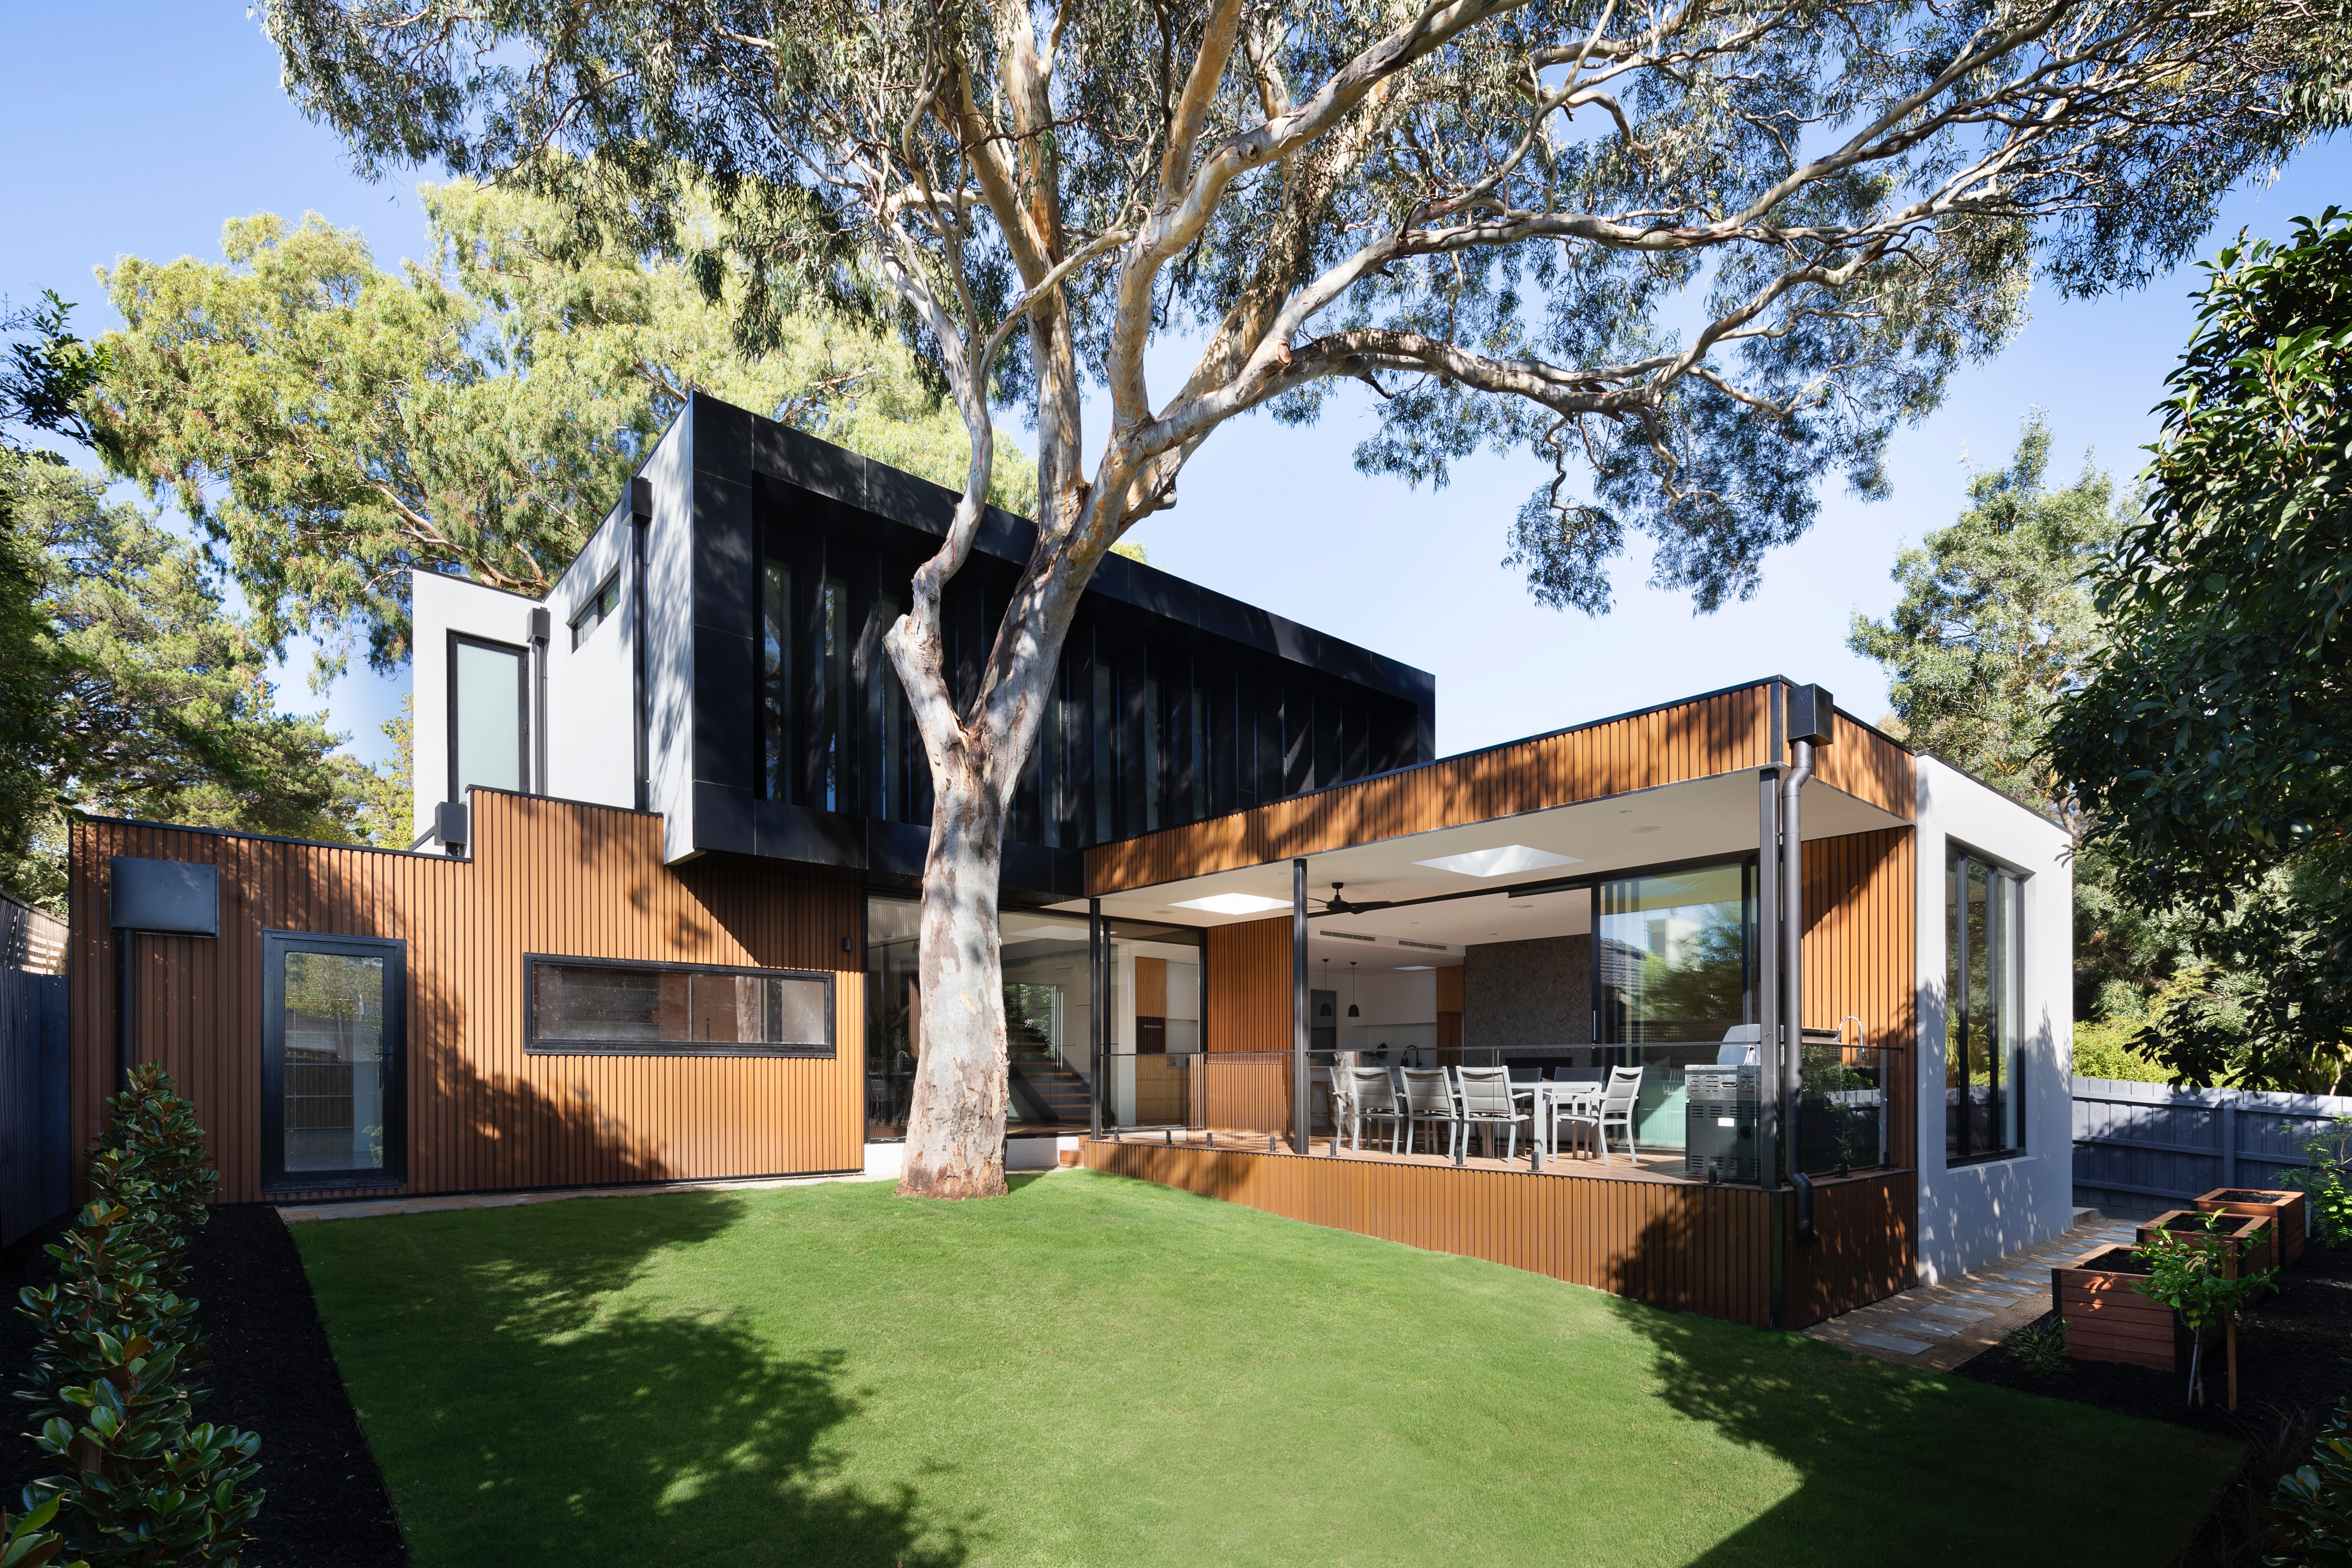 Modern Split Level Single Storey Home Builder. Your Trusted Builders in Sydney.